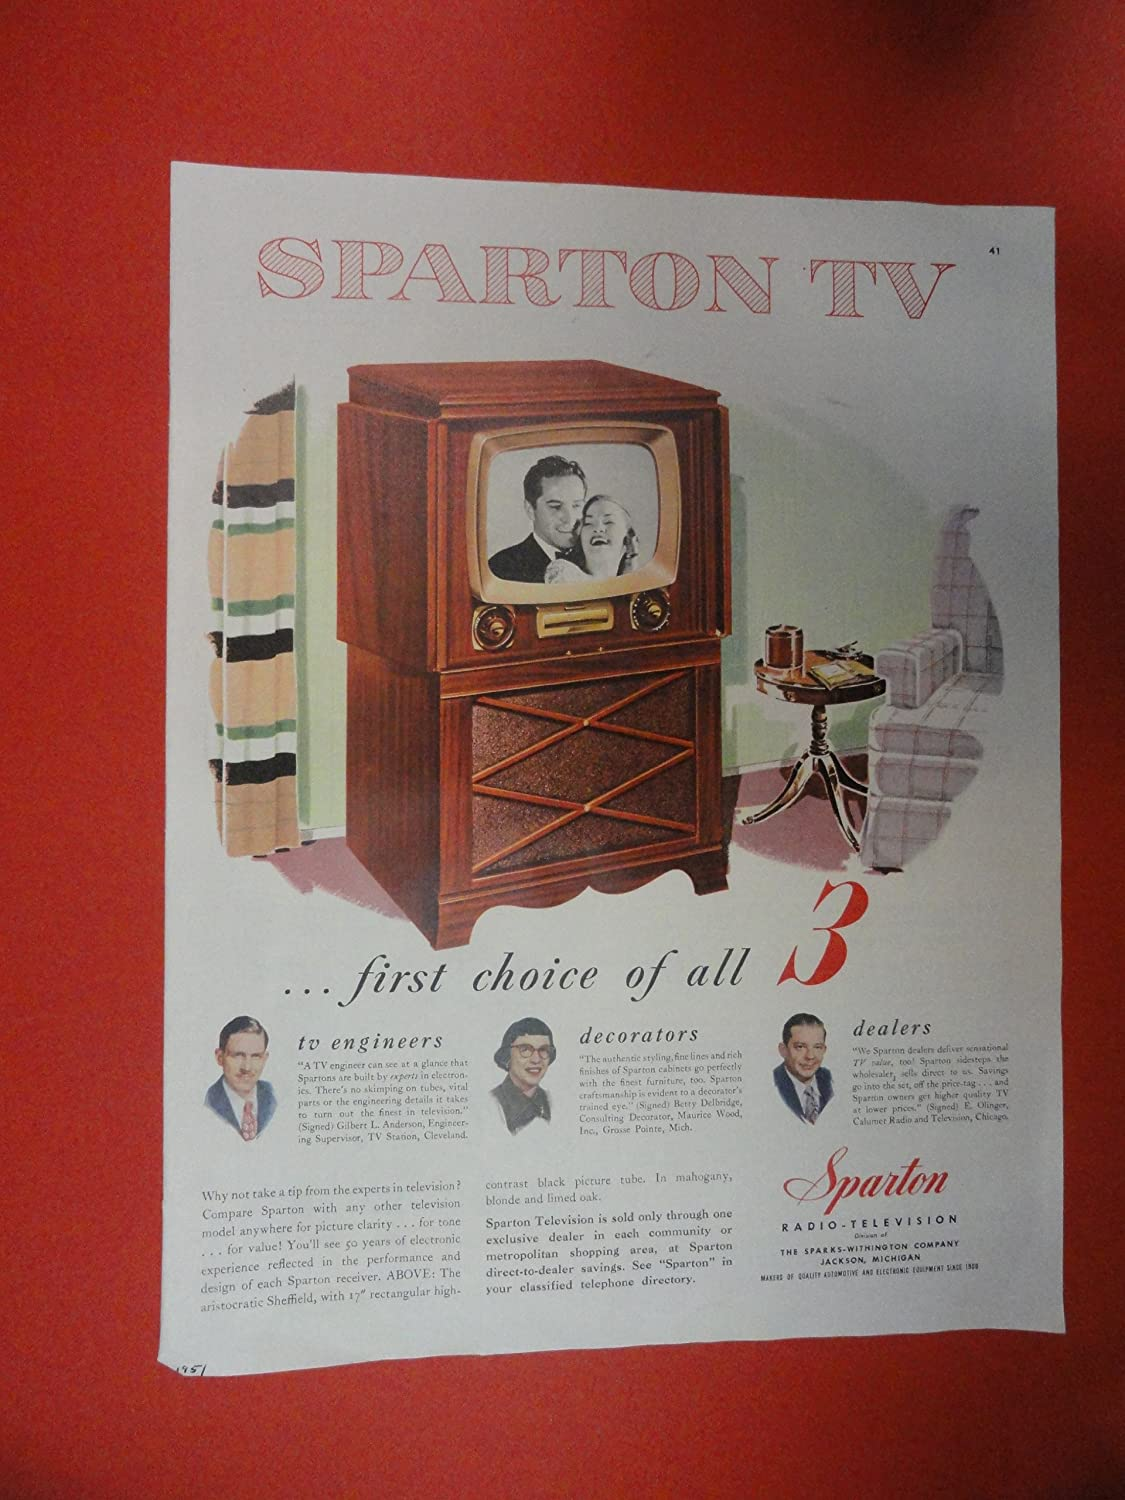 Amazon.com: Sparton TV Print Ad. TV in living room Orinigal ... on home sofa sleepers, home mirrors, home kitchen, home design, home cell phones, home art collection, home health, home walls, home upholstery fabric, home windows, home funeral services, home garden ideas, home garden trees, home roof systems, home bed, home decor, home appliances, home furnishings, home countertops,